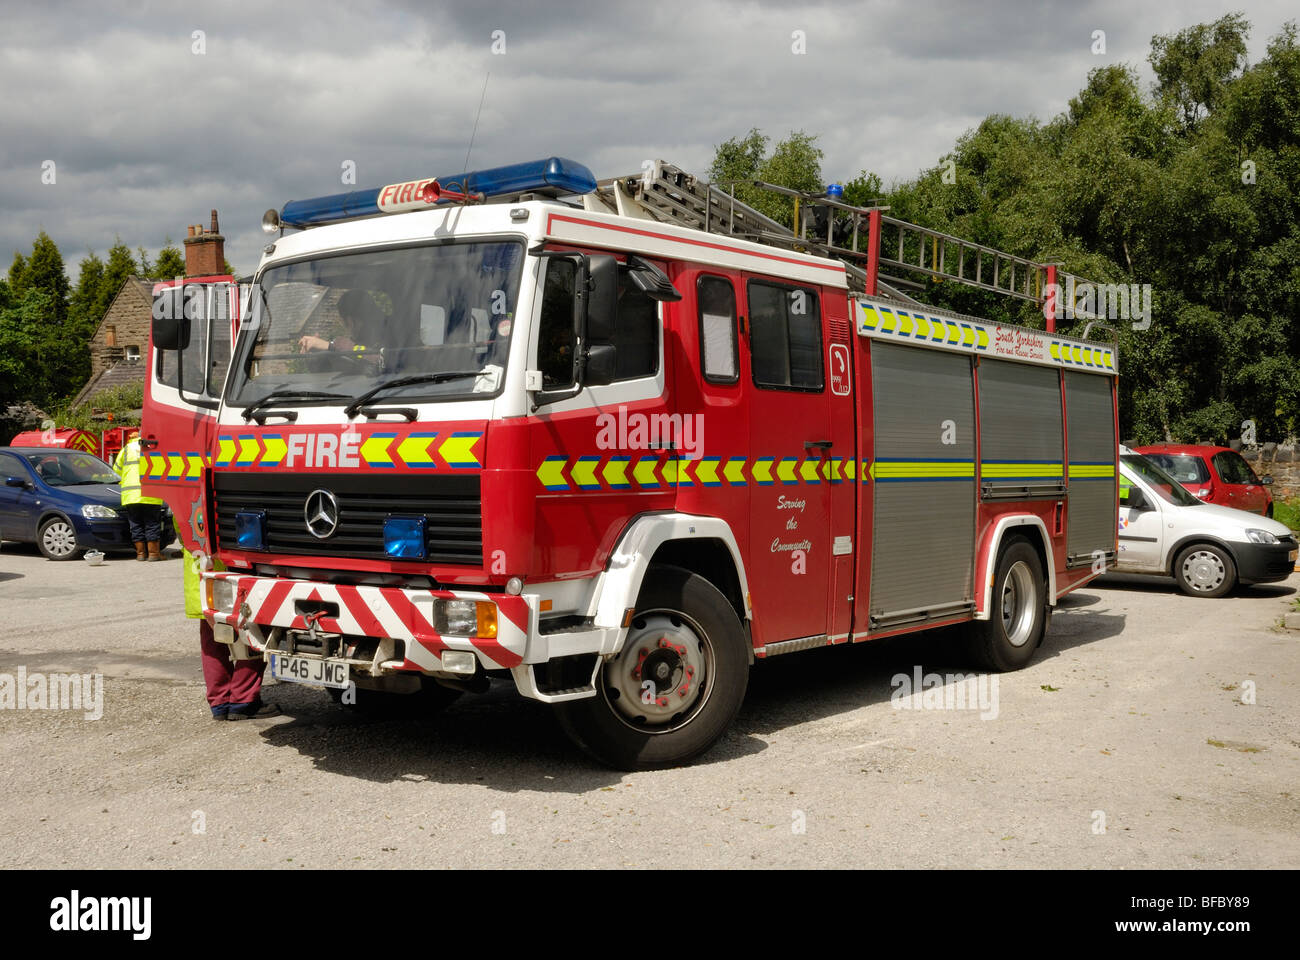 Fire U0026 Rescue Service South Yorkshire Mercedes Fire Engine   Stock Image